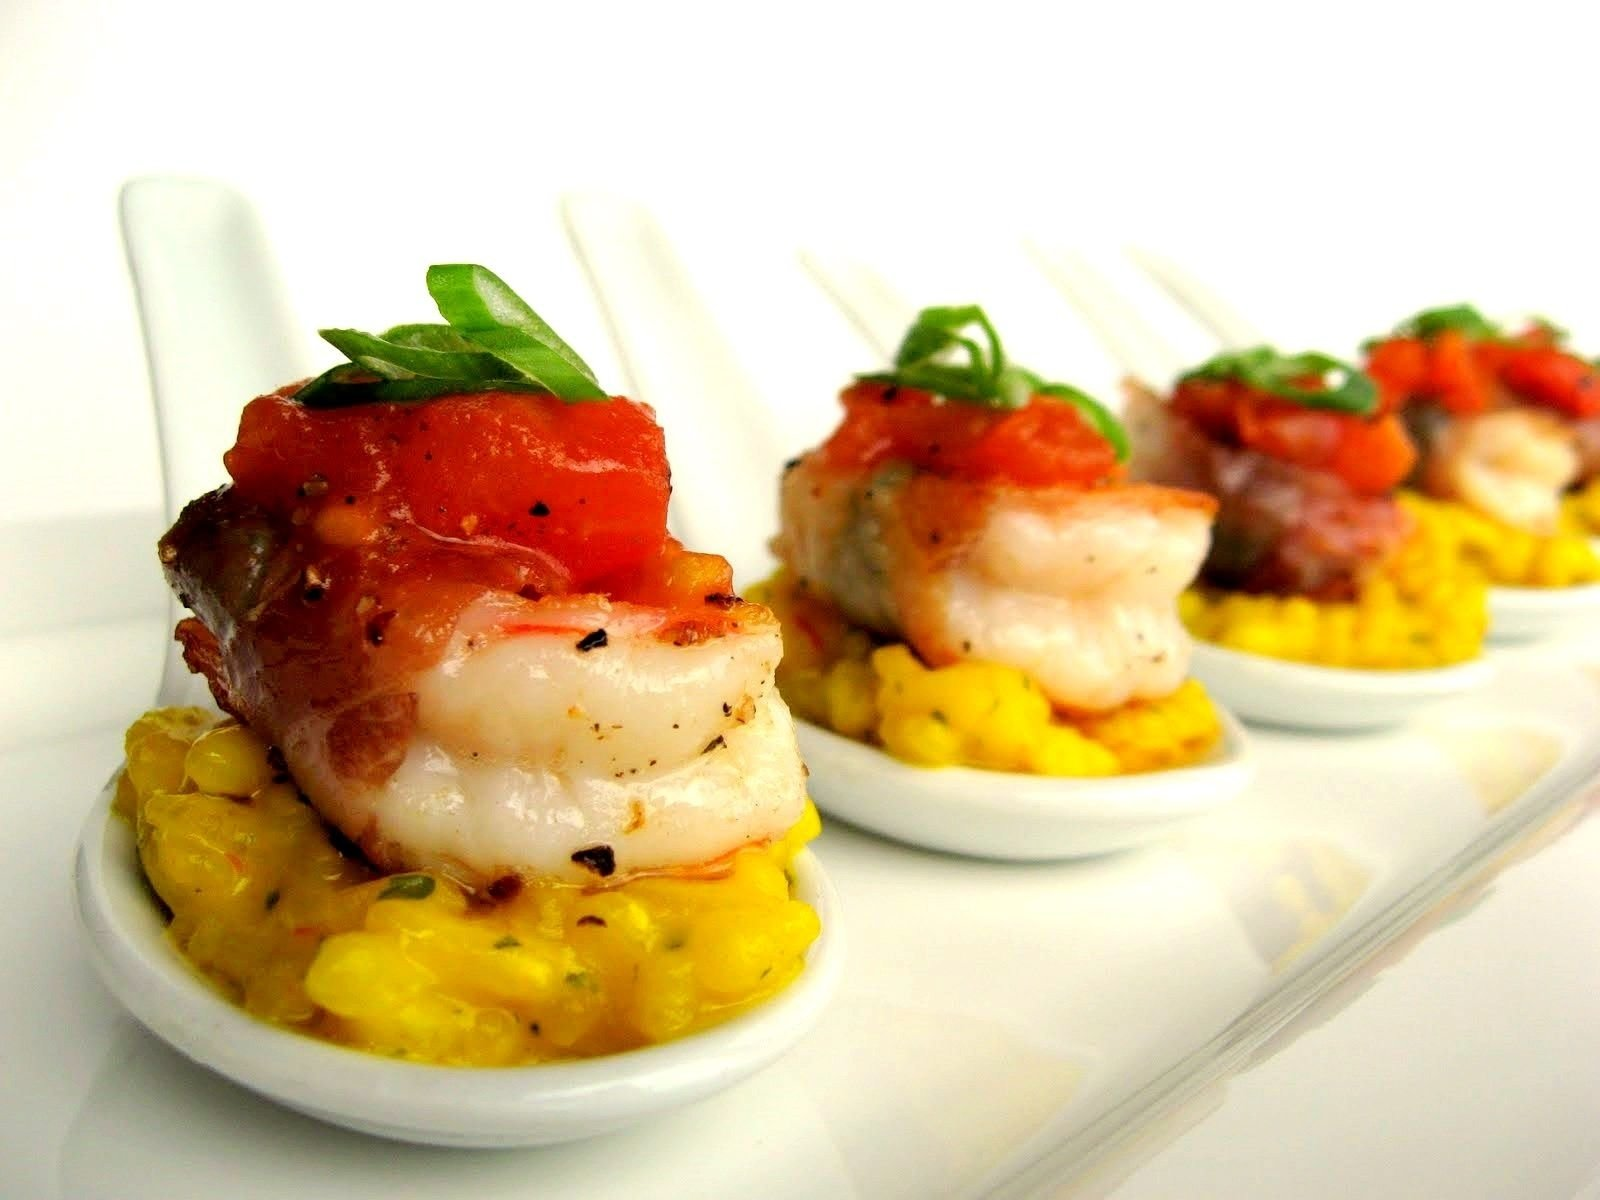 10 Nice Passed Hors D Oeuvres Ideas http cheffrankotte files wordpress 2012 01 hors d oeuvres home 2021